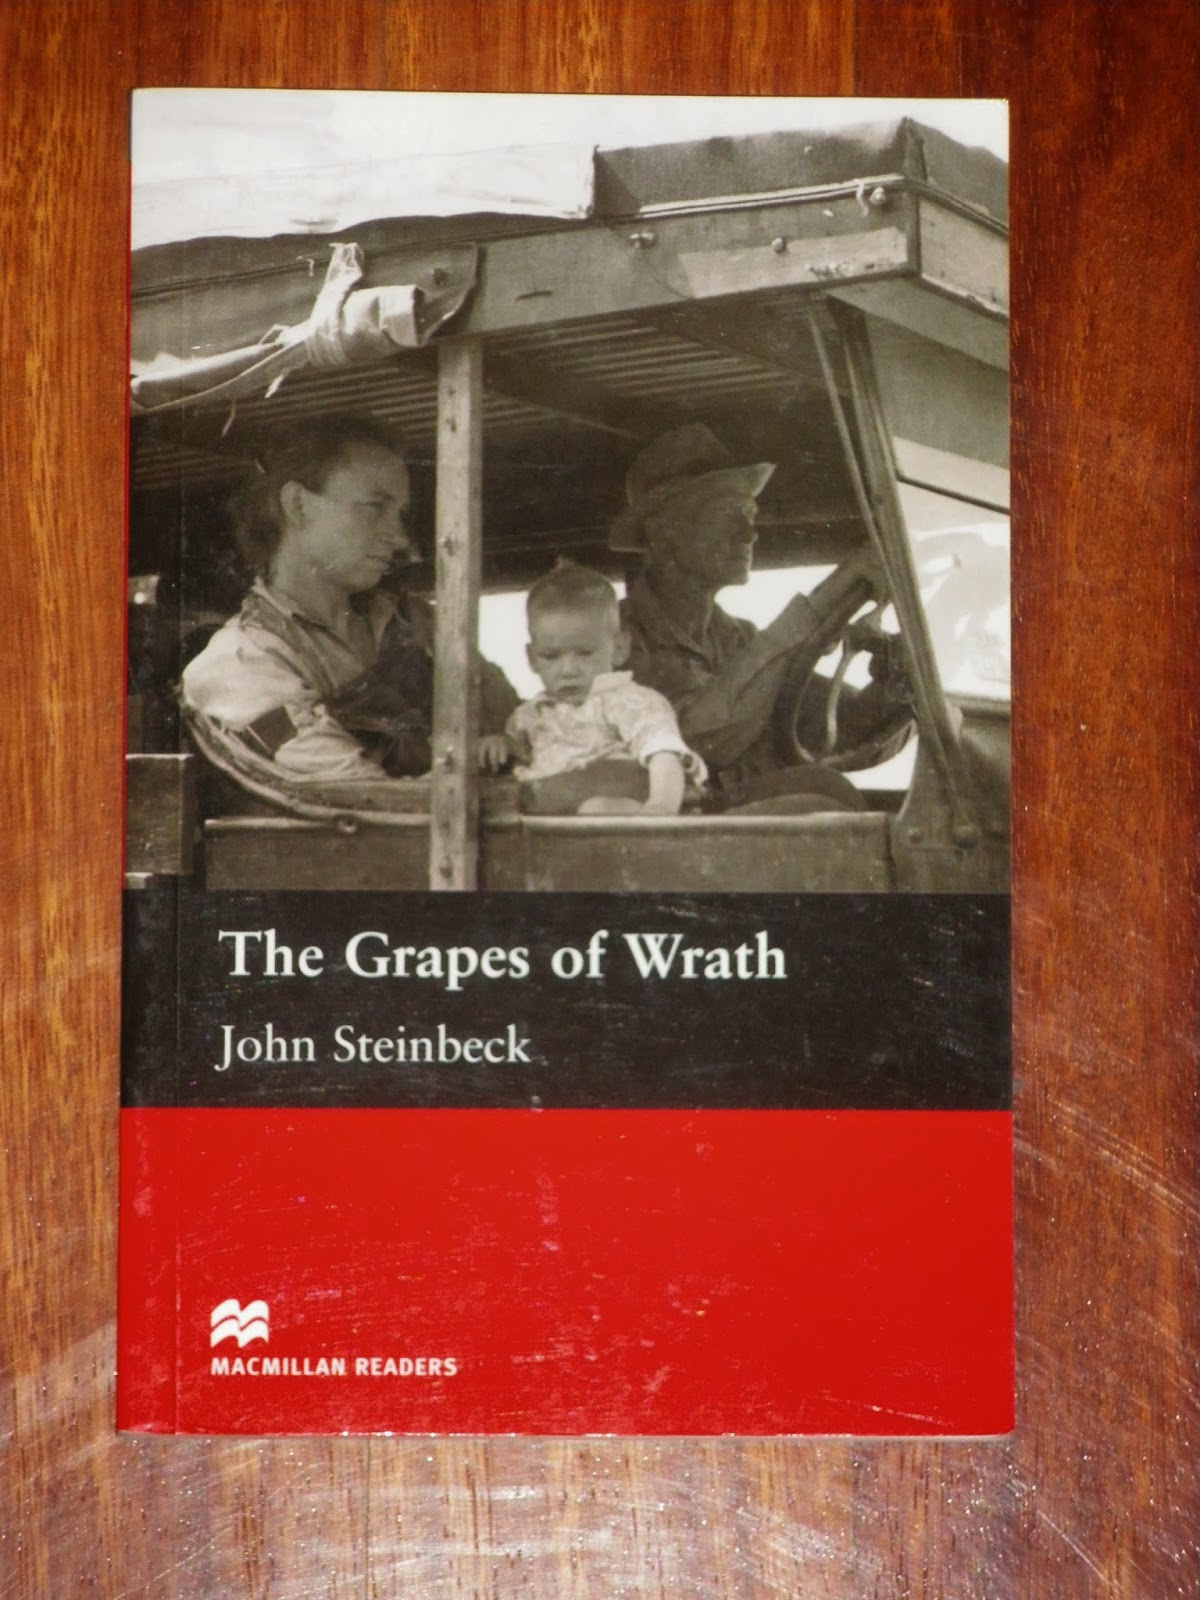 a short analysis of the grapes of wrath by john steinbeck The grapes of wrath study guide contains a biography of john steinbeck, literature essays, quiz questions, major themes, characters, and a full summary and analysis.